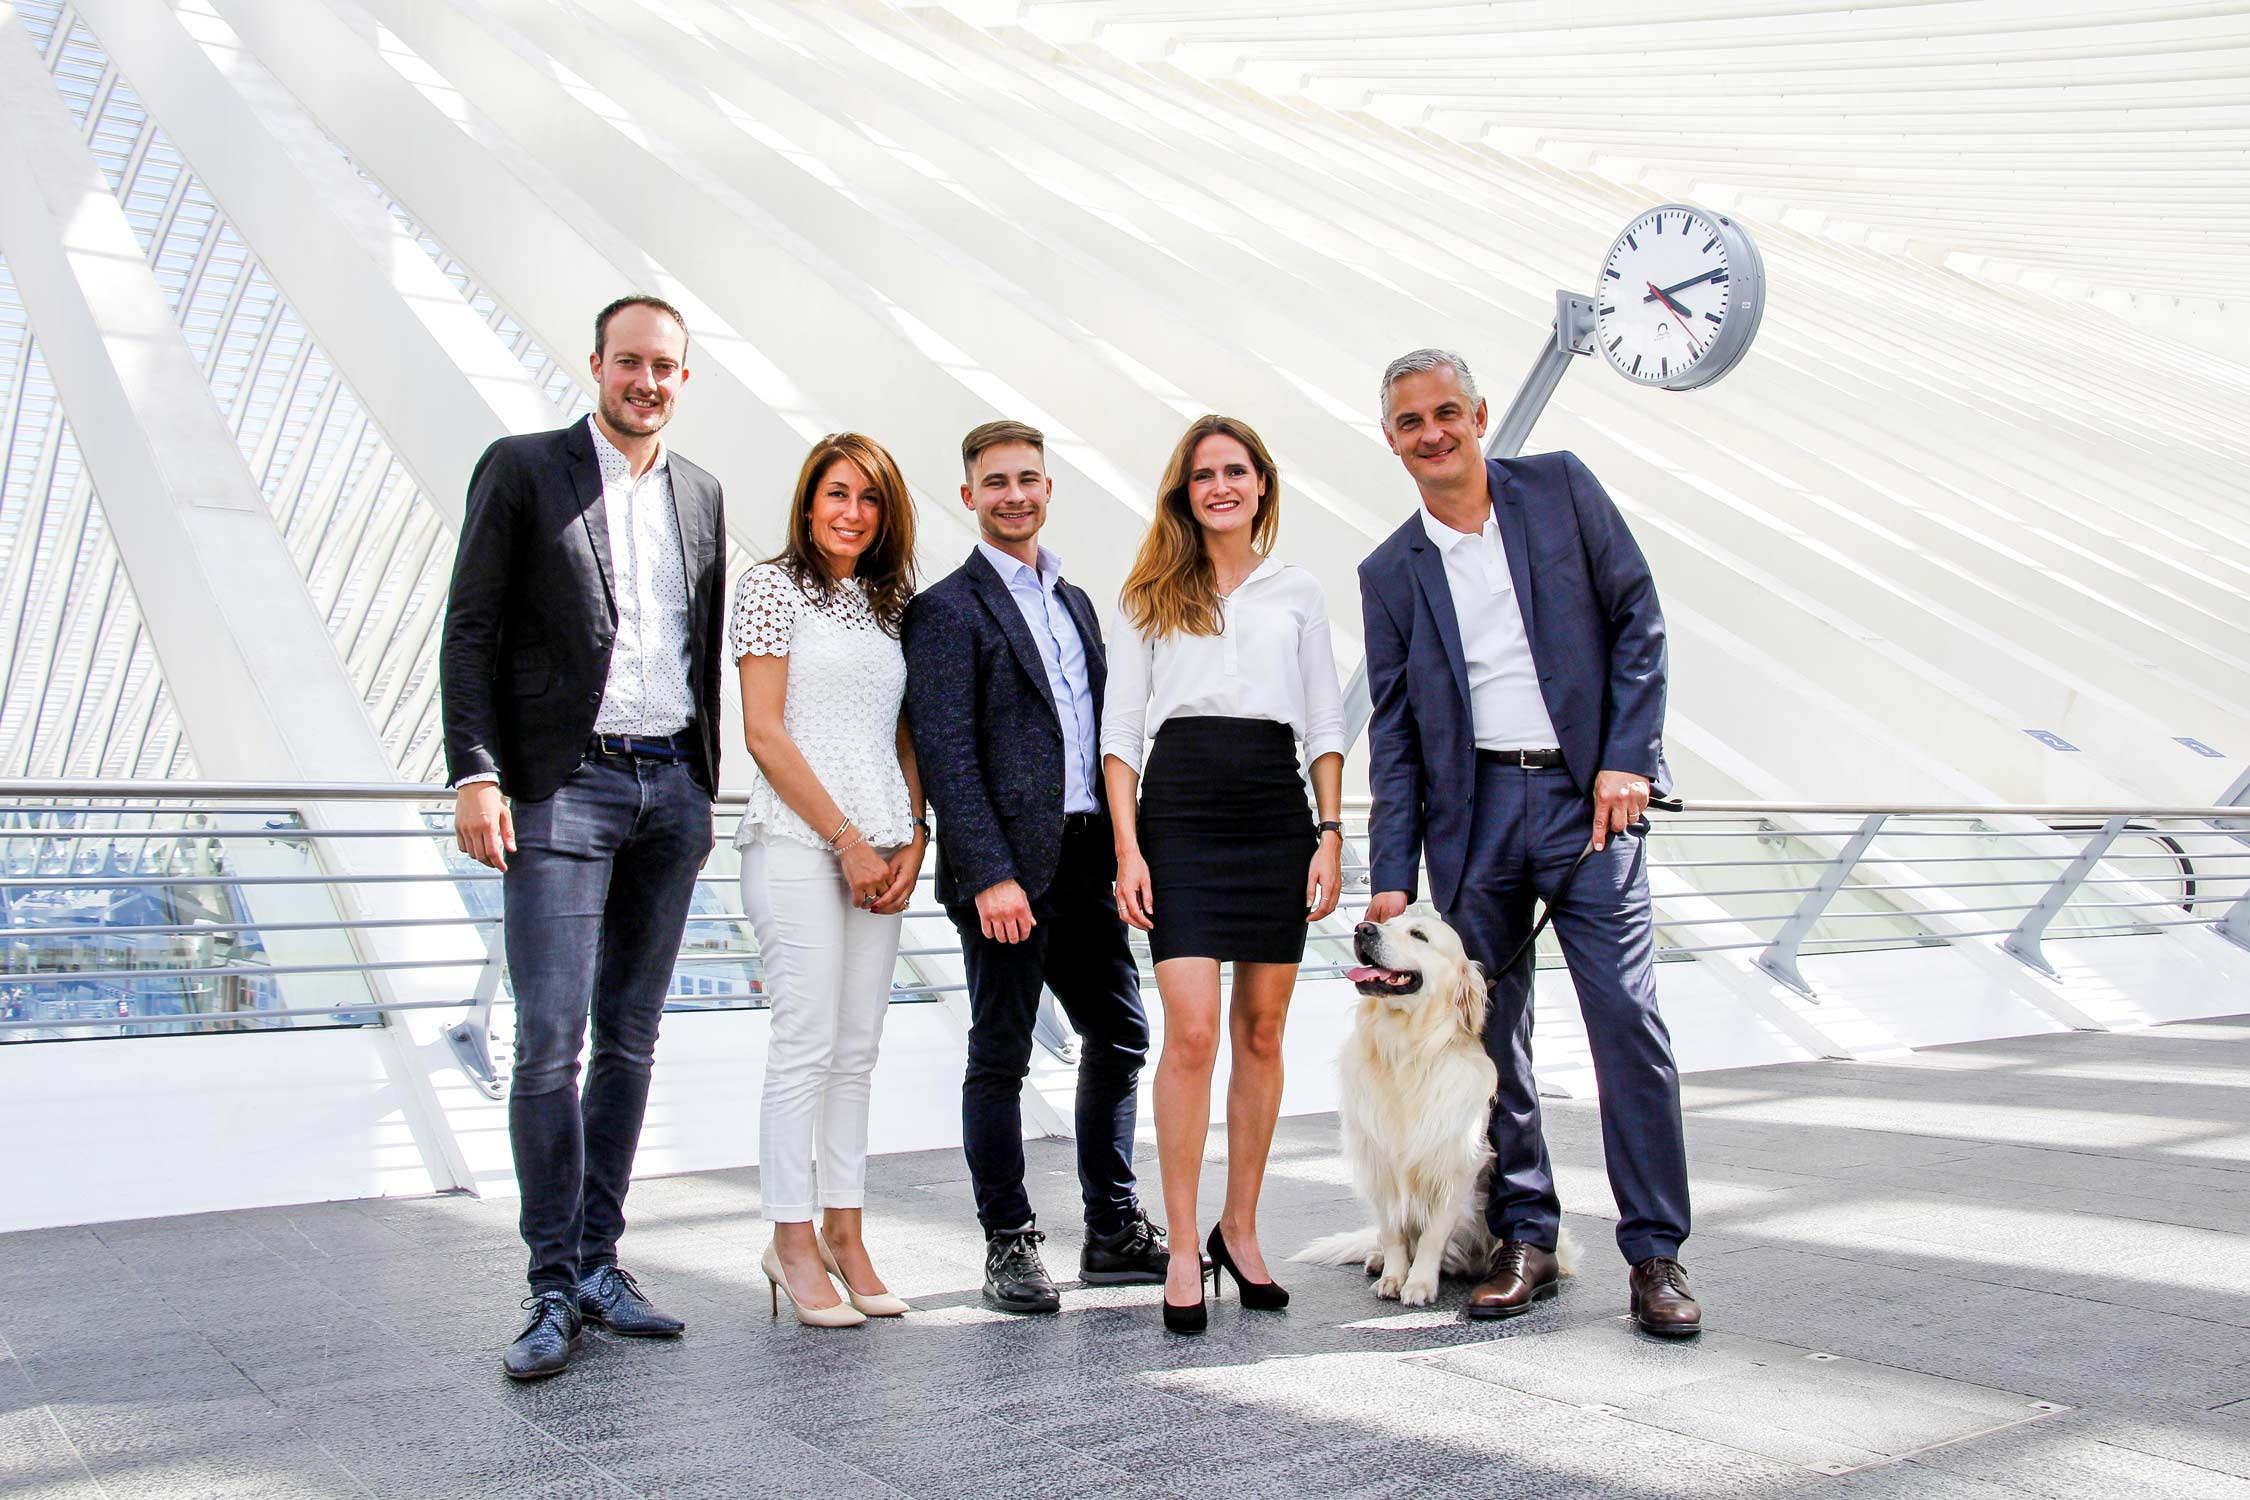 Optimum immobilier Liège team